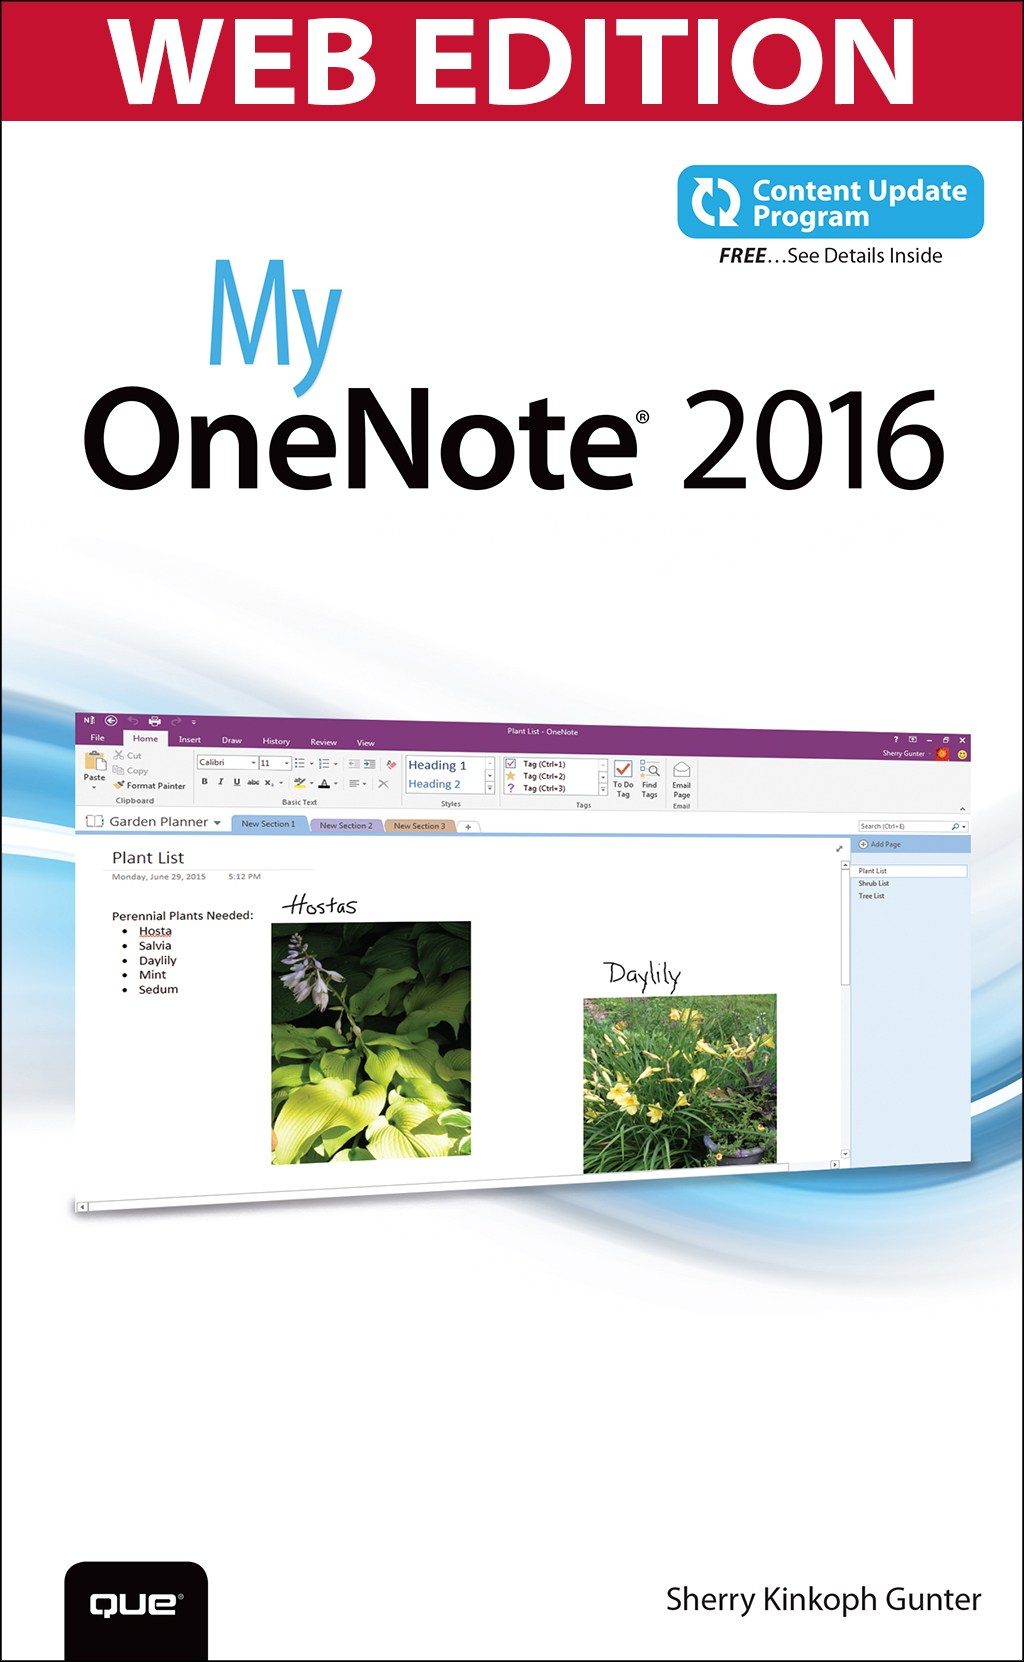 My OneNote 2016 (Web Edition with Content Update Program)